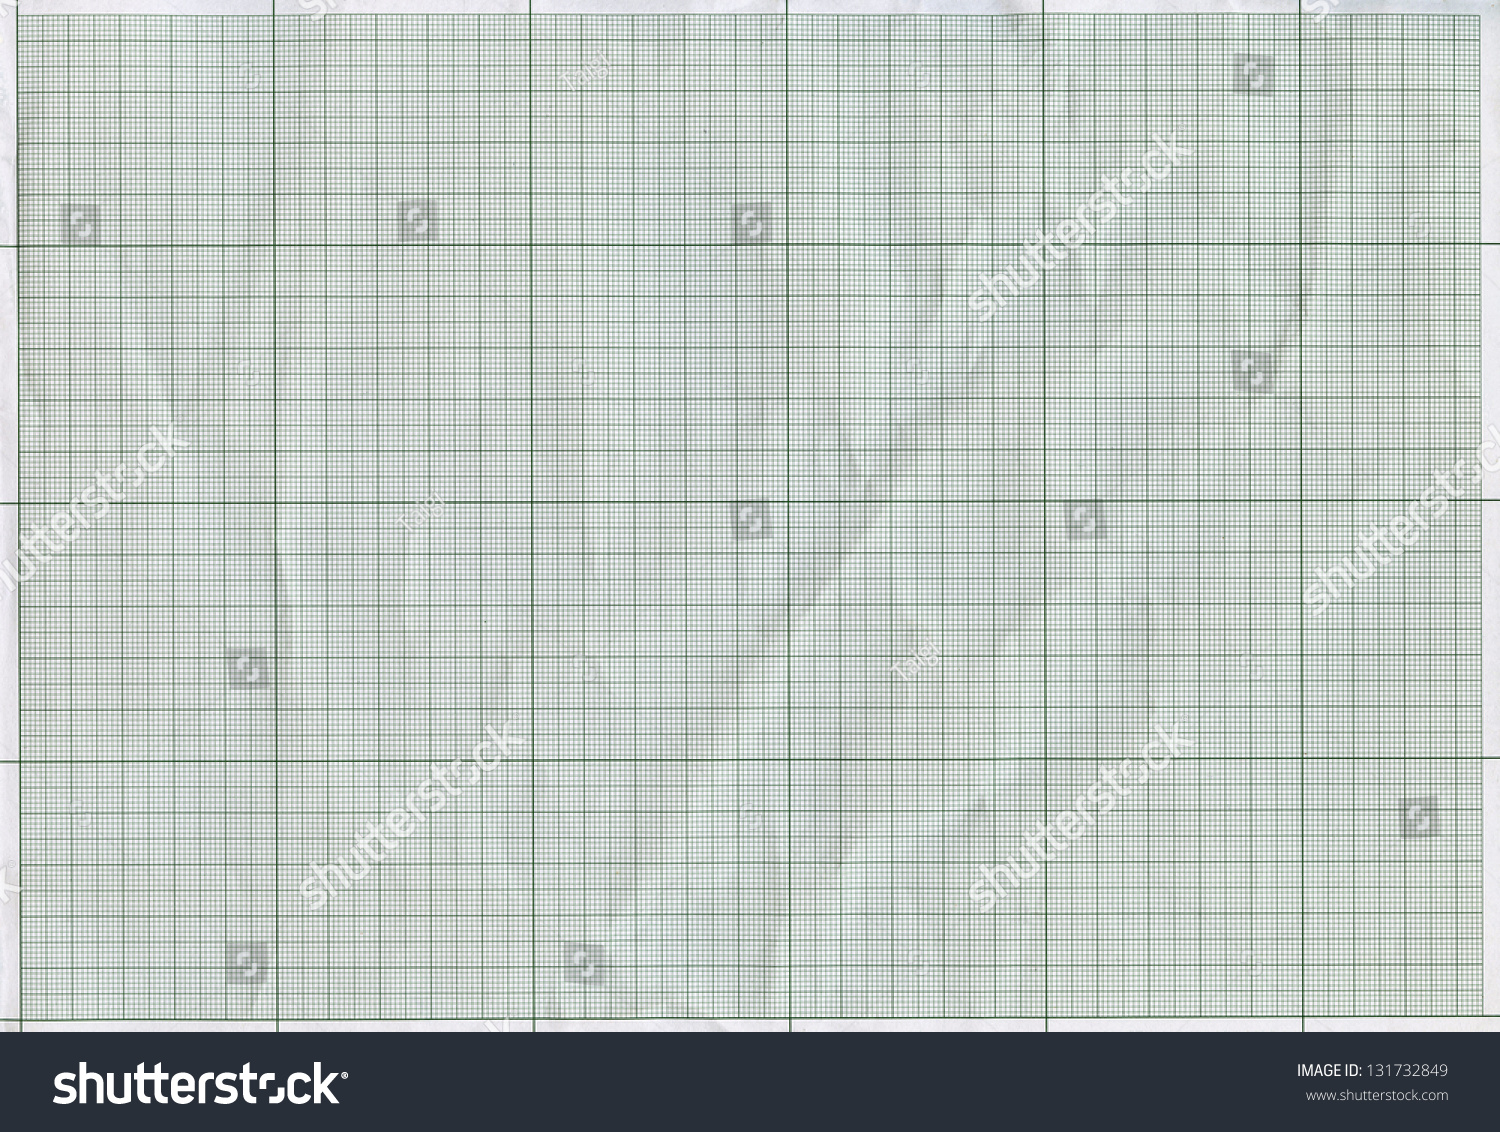 graph paper texture square grid background stock photo